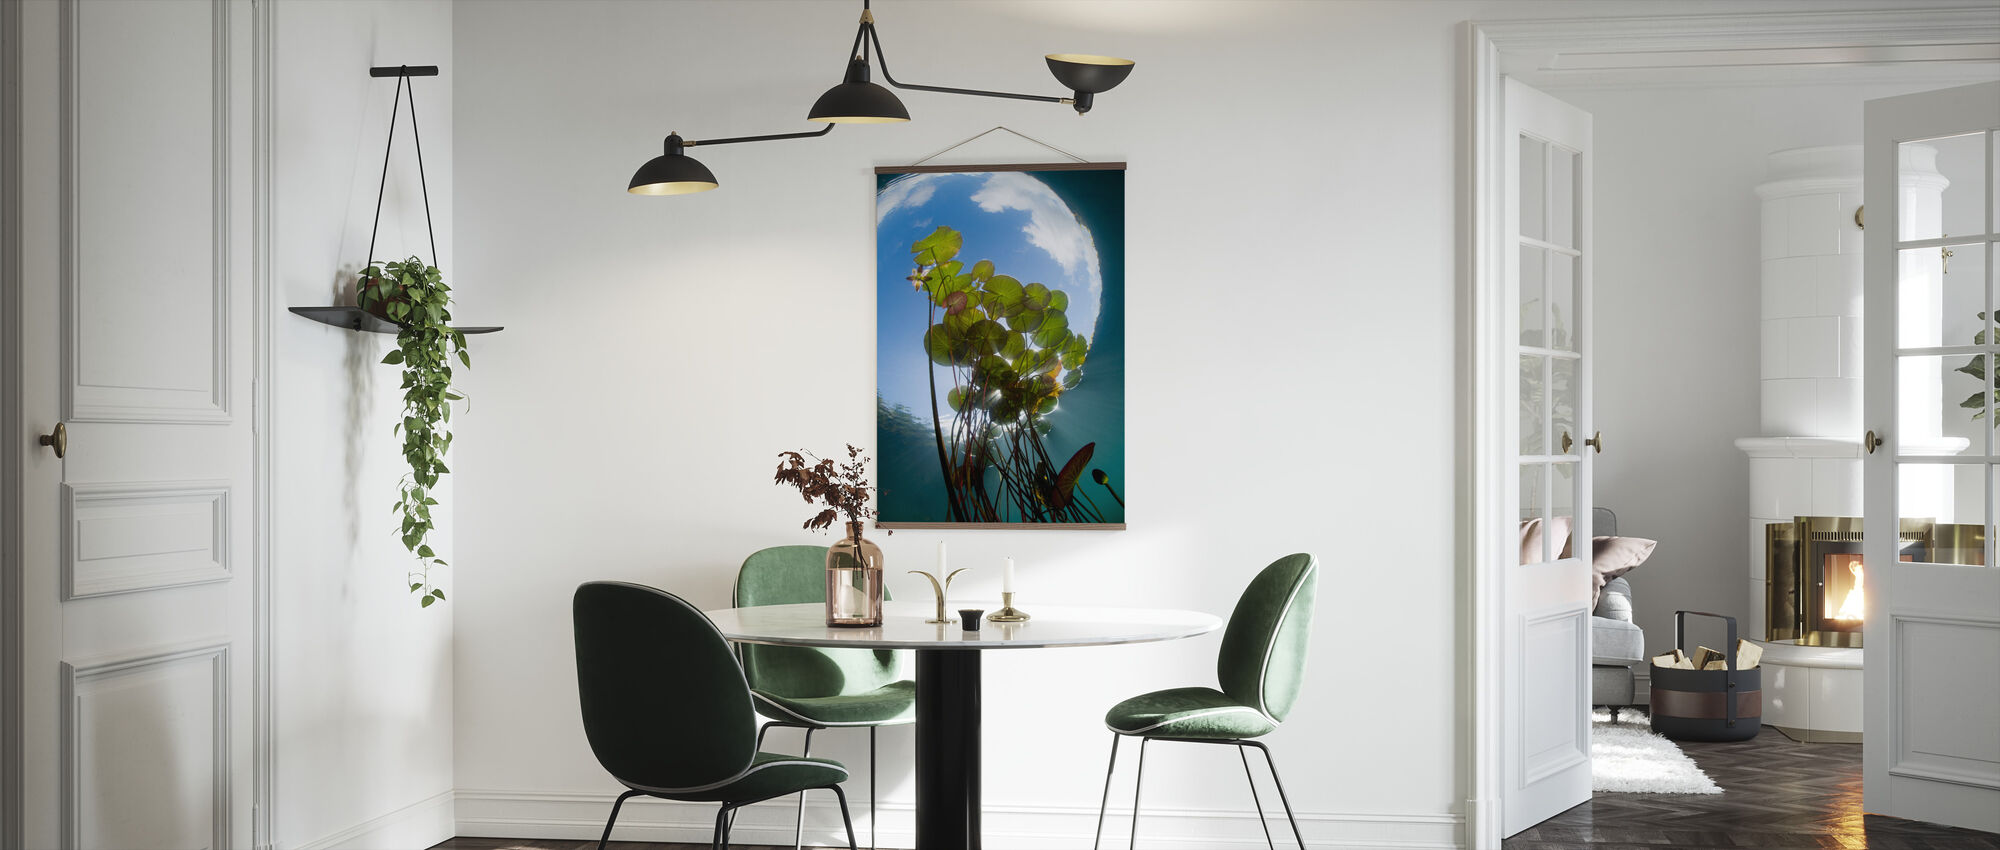 Floating Water Lilies - Poster - Kitchen